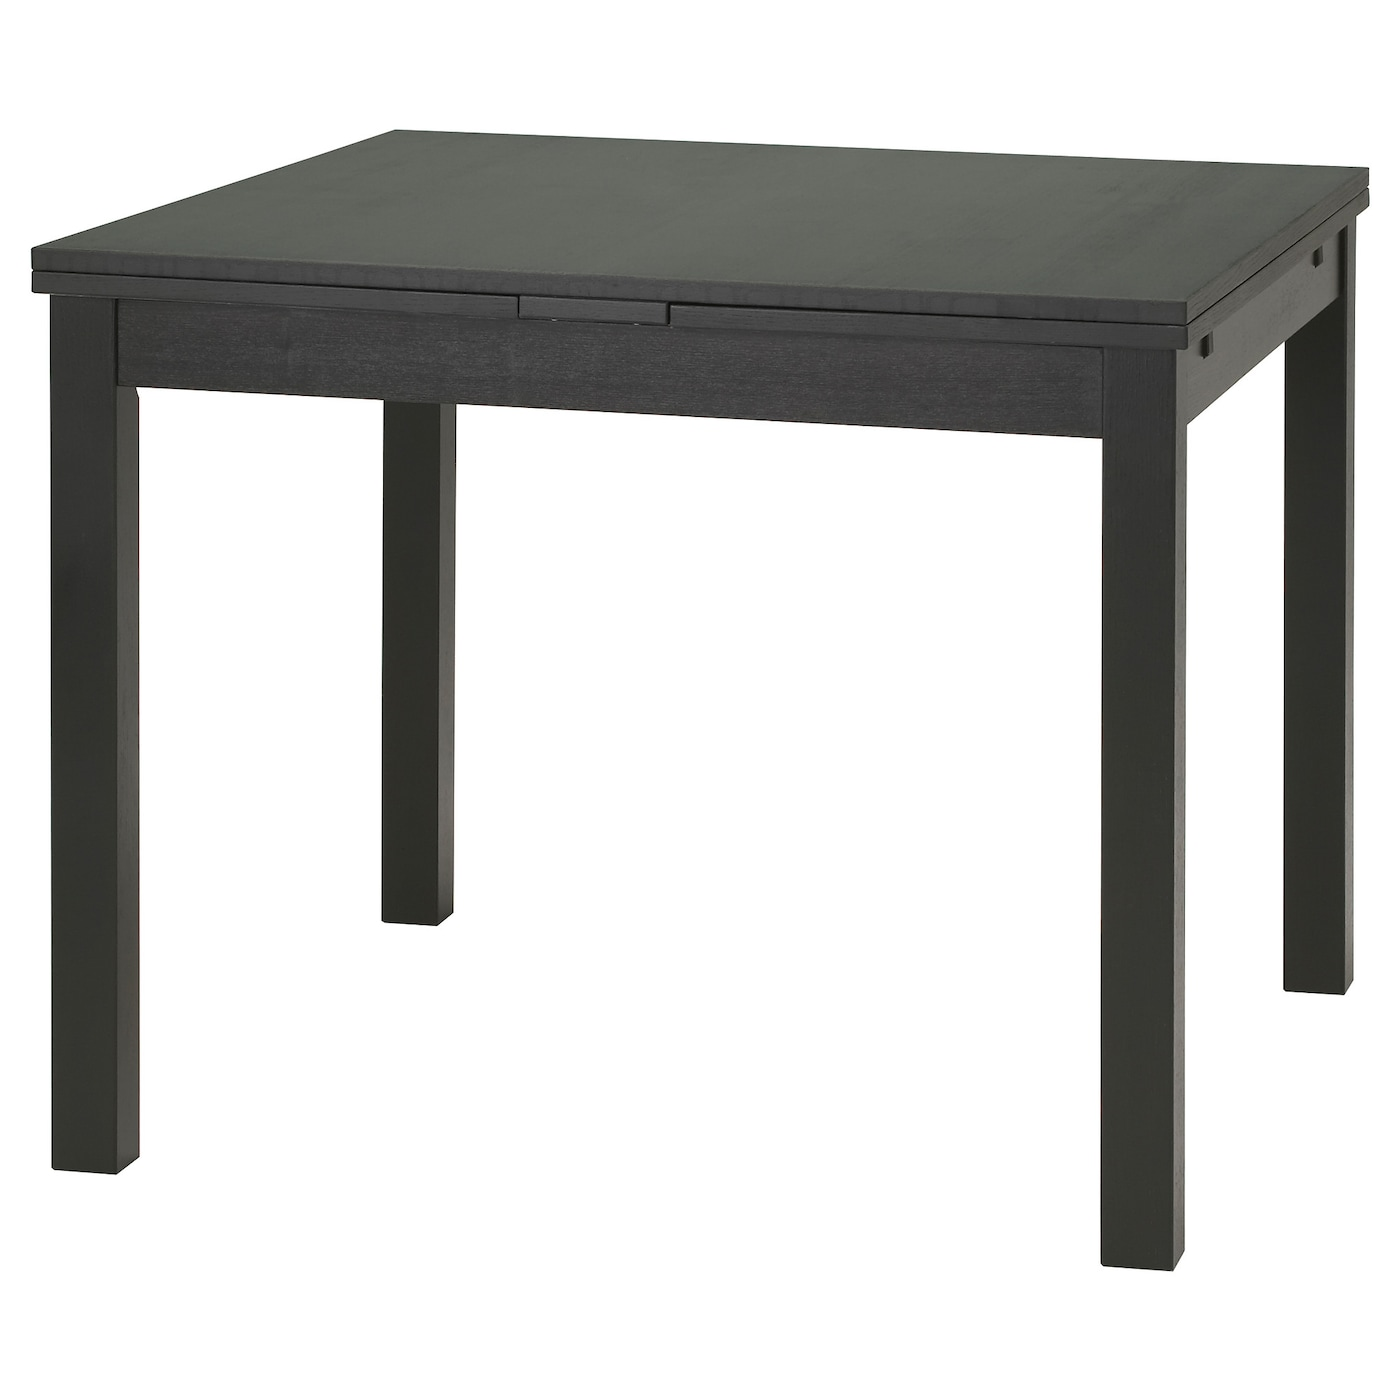 Bjursta extendable table brown black 90 129 168x90 cm ikea for Table a manger ikea